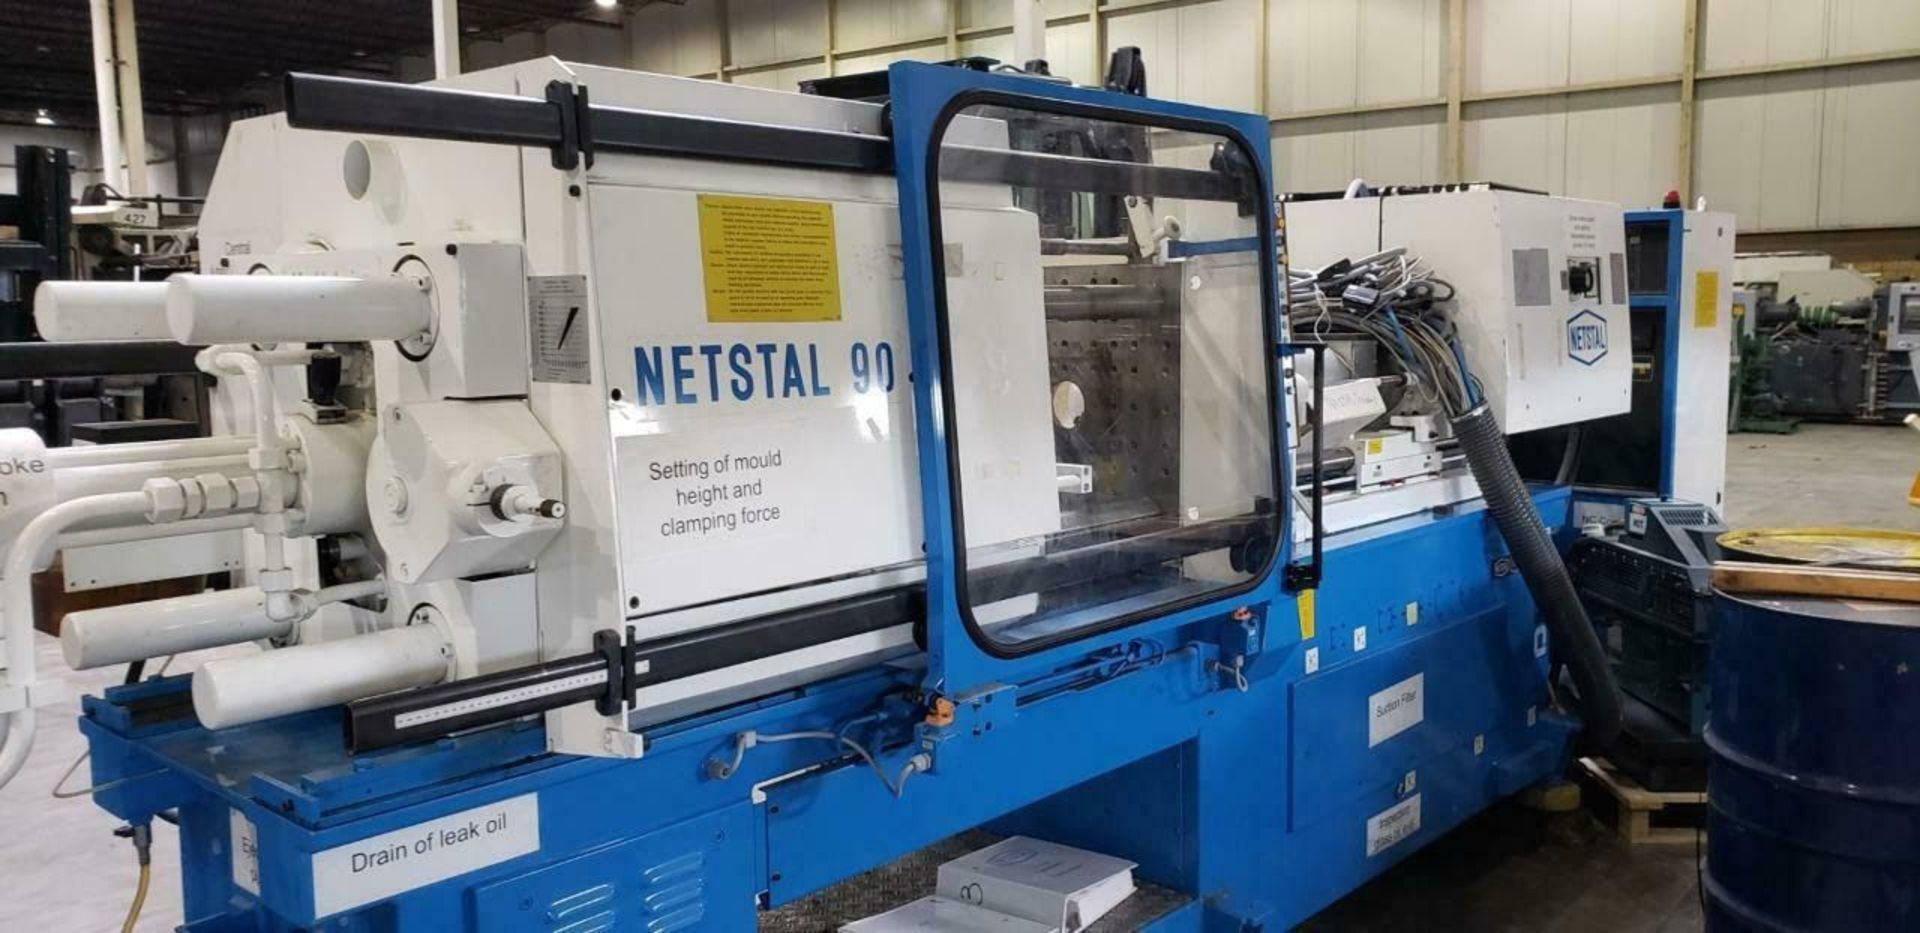 Lot 303A - (1993) NETSAL N170/90-MPS 90 TON INJECTION MOLDING MACHINE (MACHINE LOCATED AT DIFFERENT LOCATION)